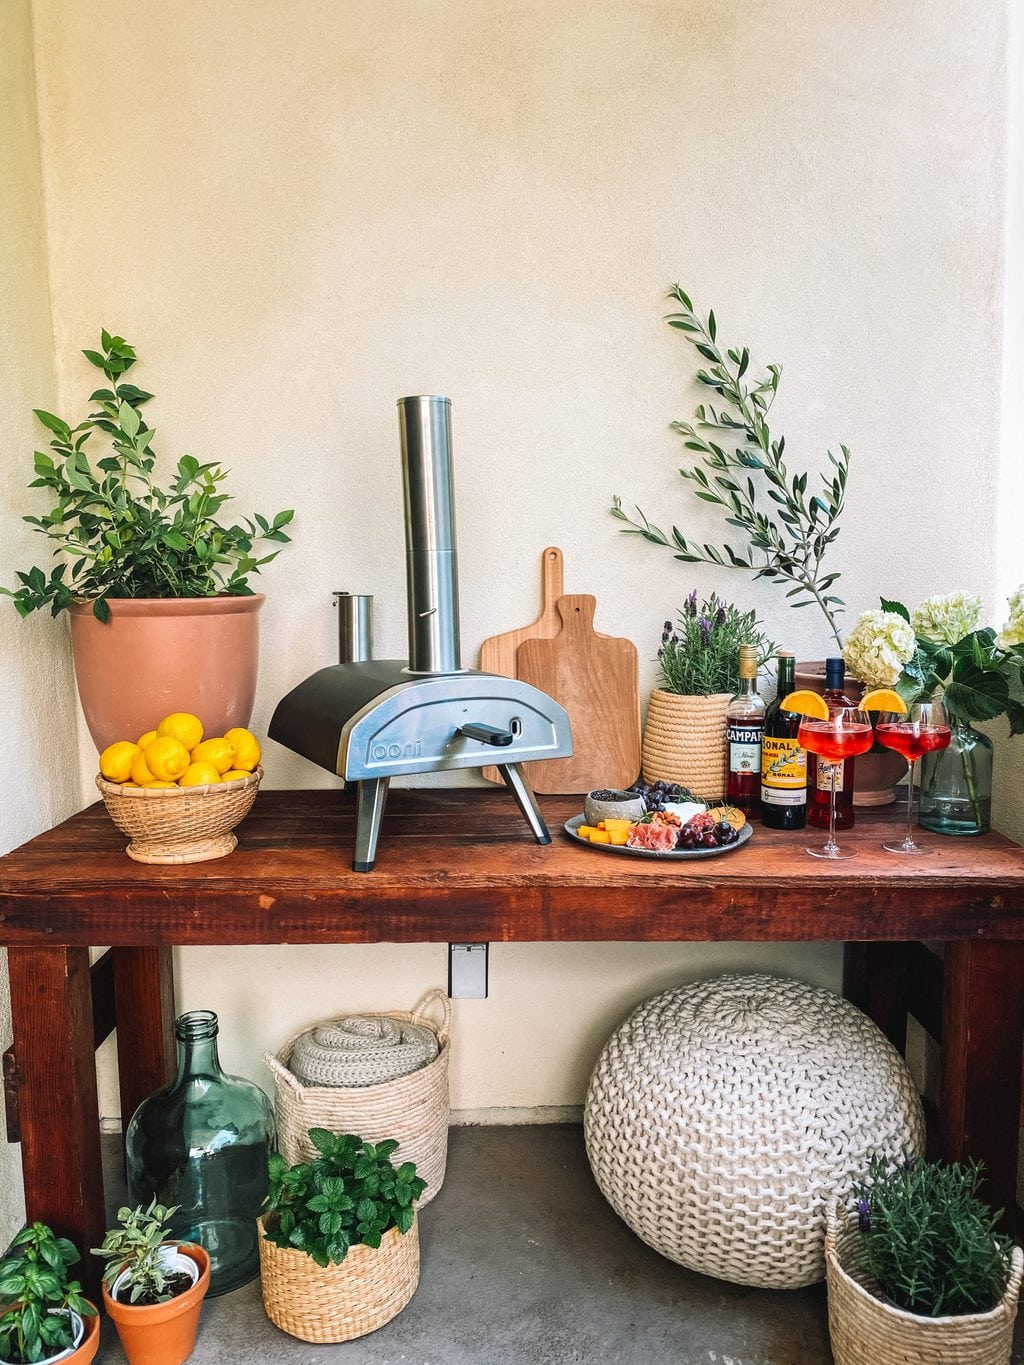 Pizza oven table with a wood fired pizza oven, plants, cutting boards, aperol spritz, and a cheese board.